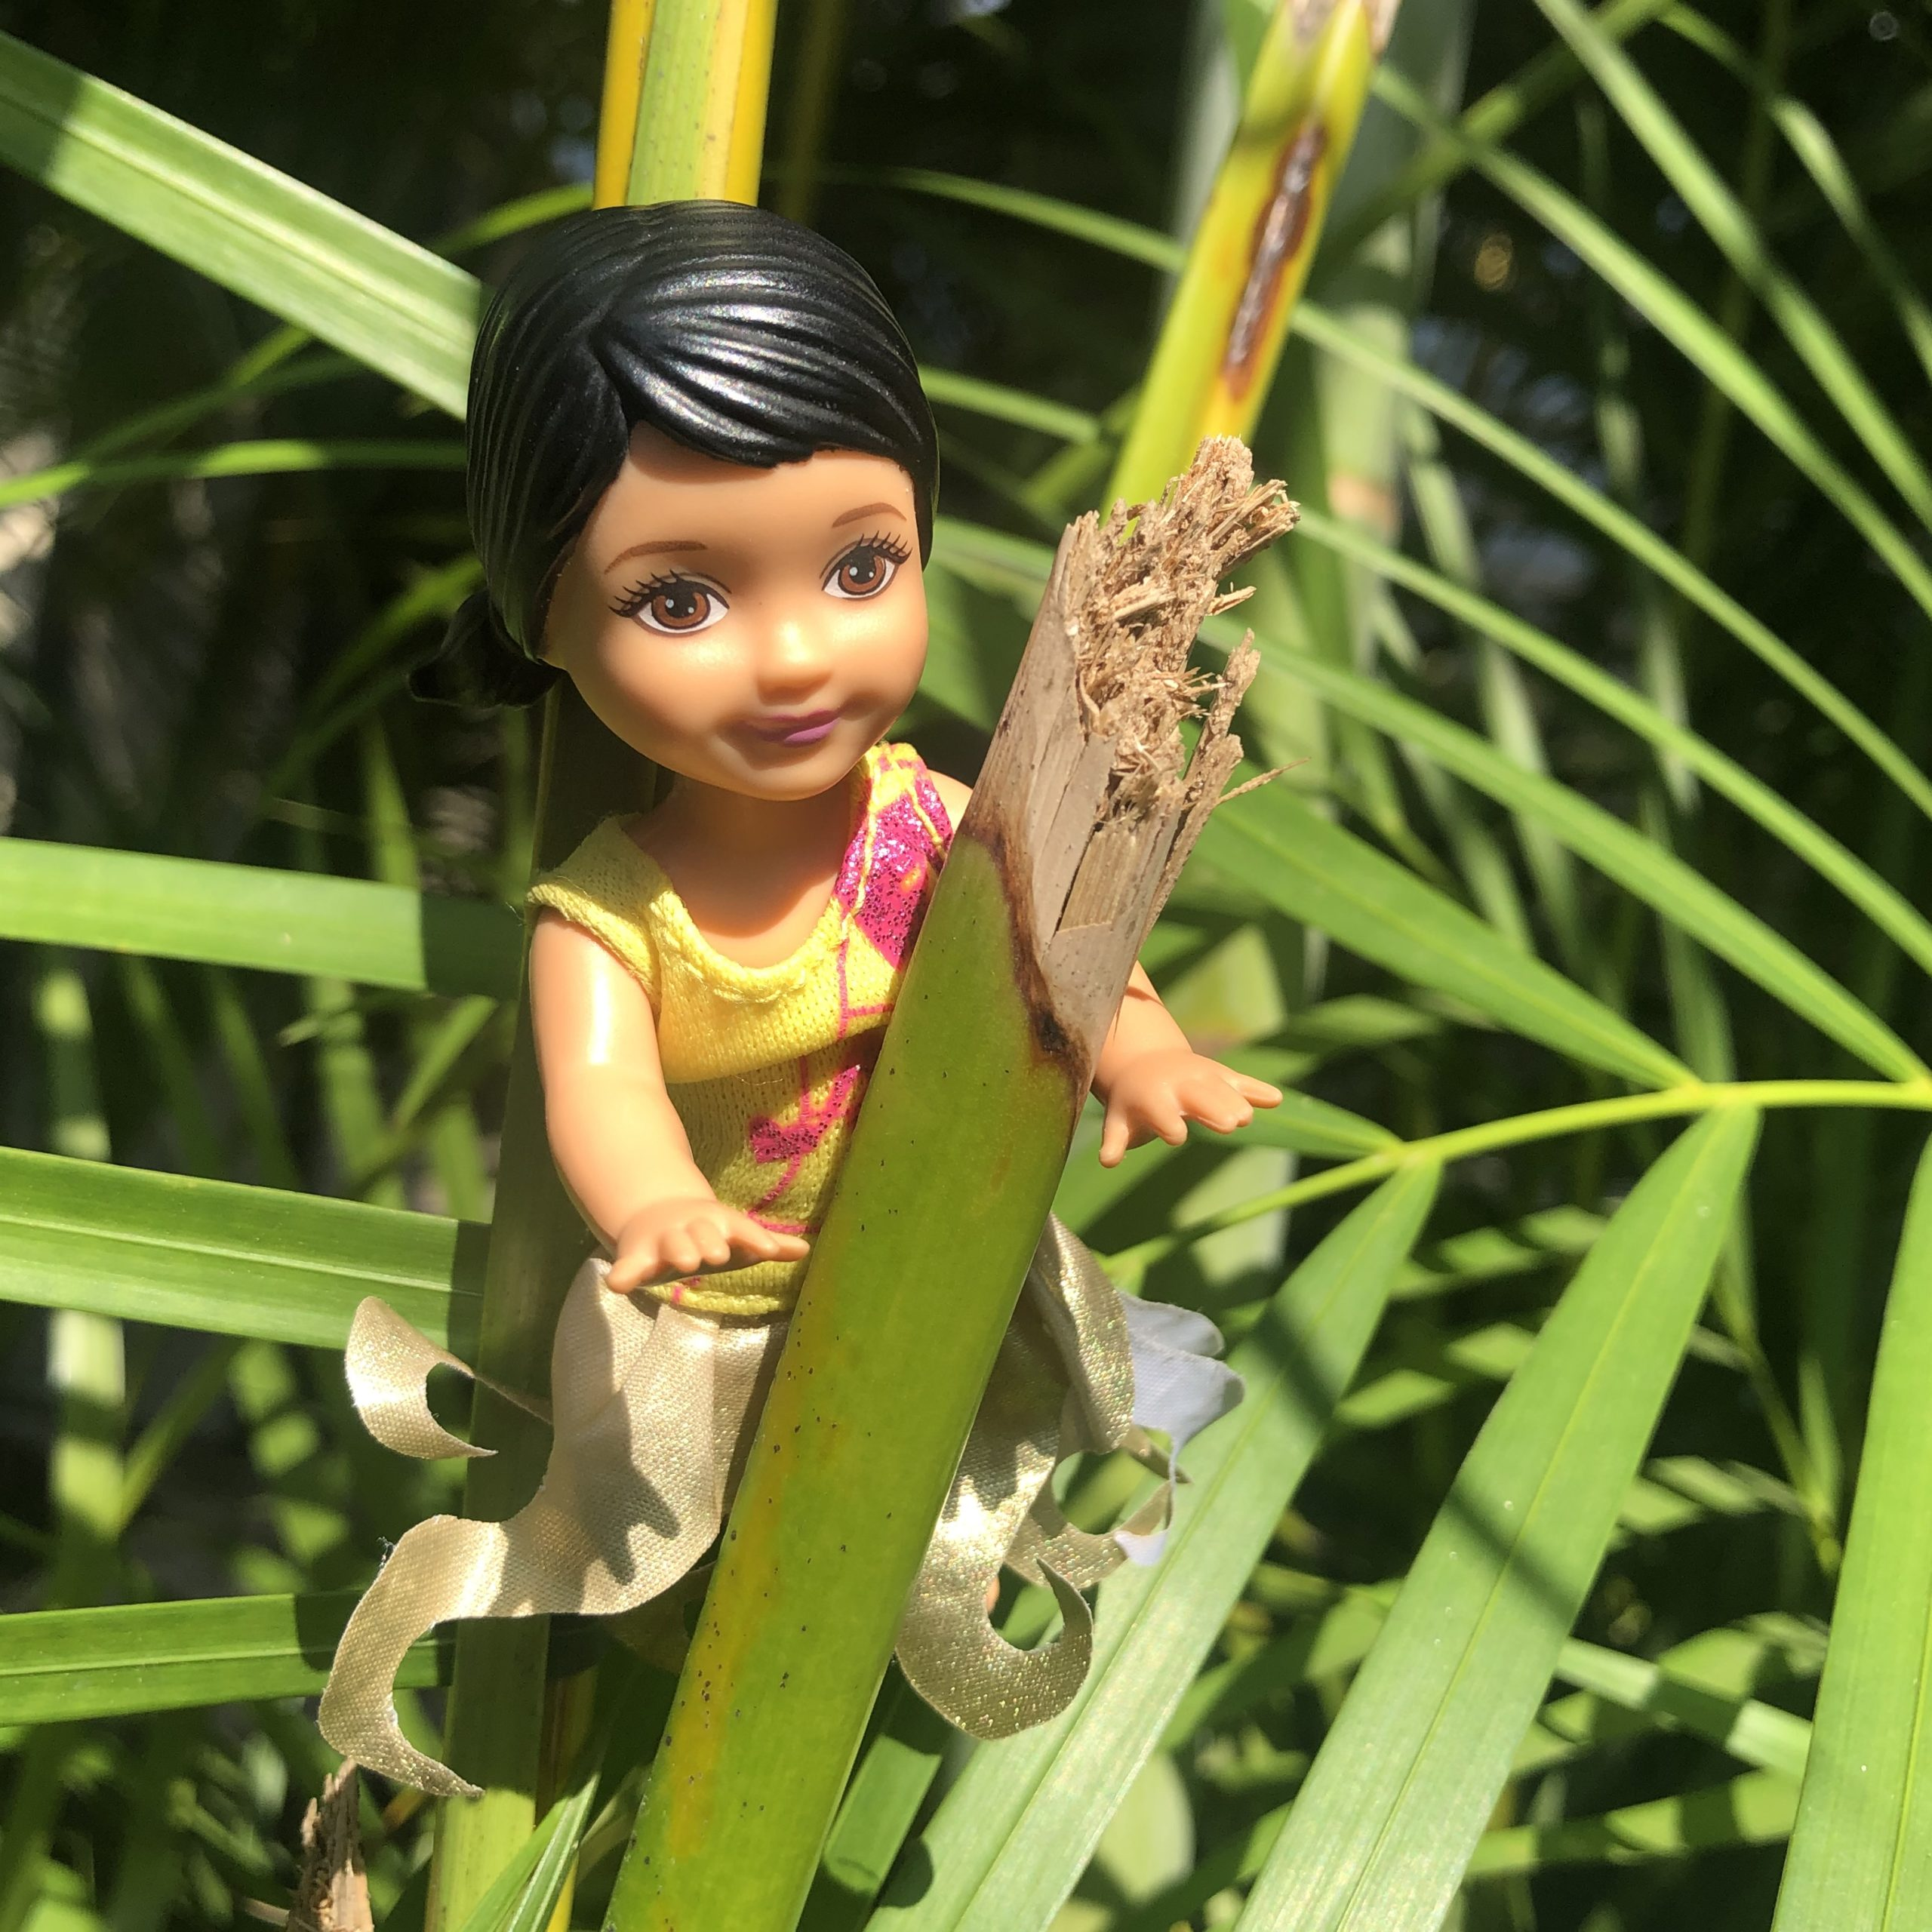 A dark haired Barbie baby in a tree for the Barbie Story for Kids, Hiking in Costa Rica.